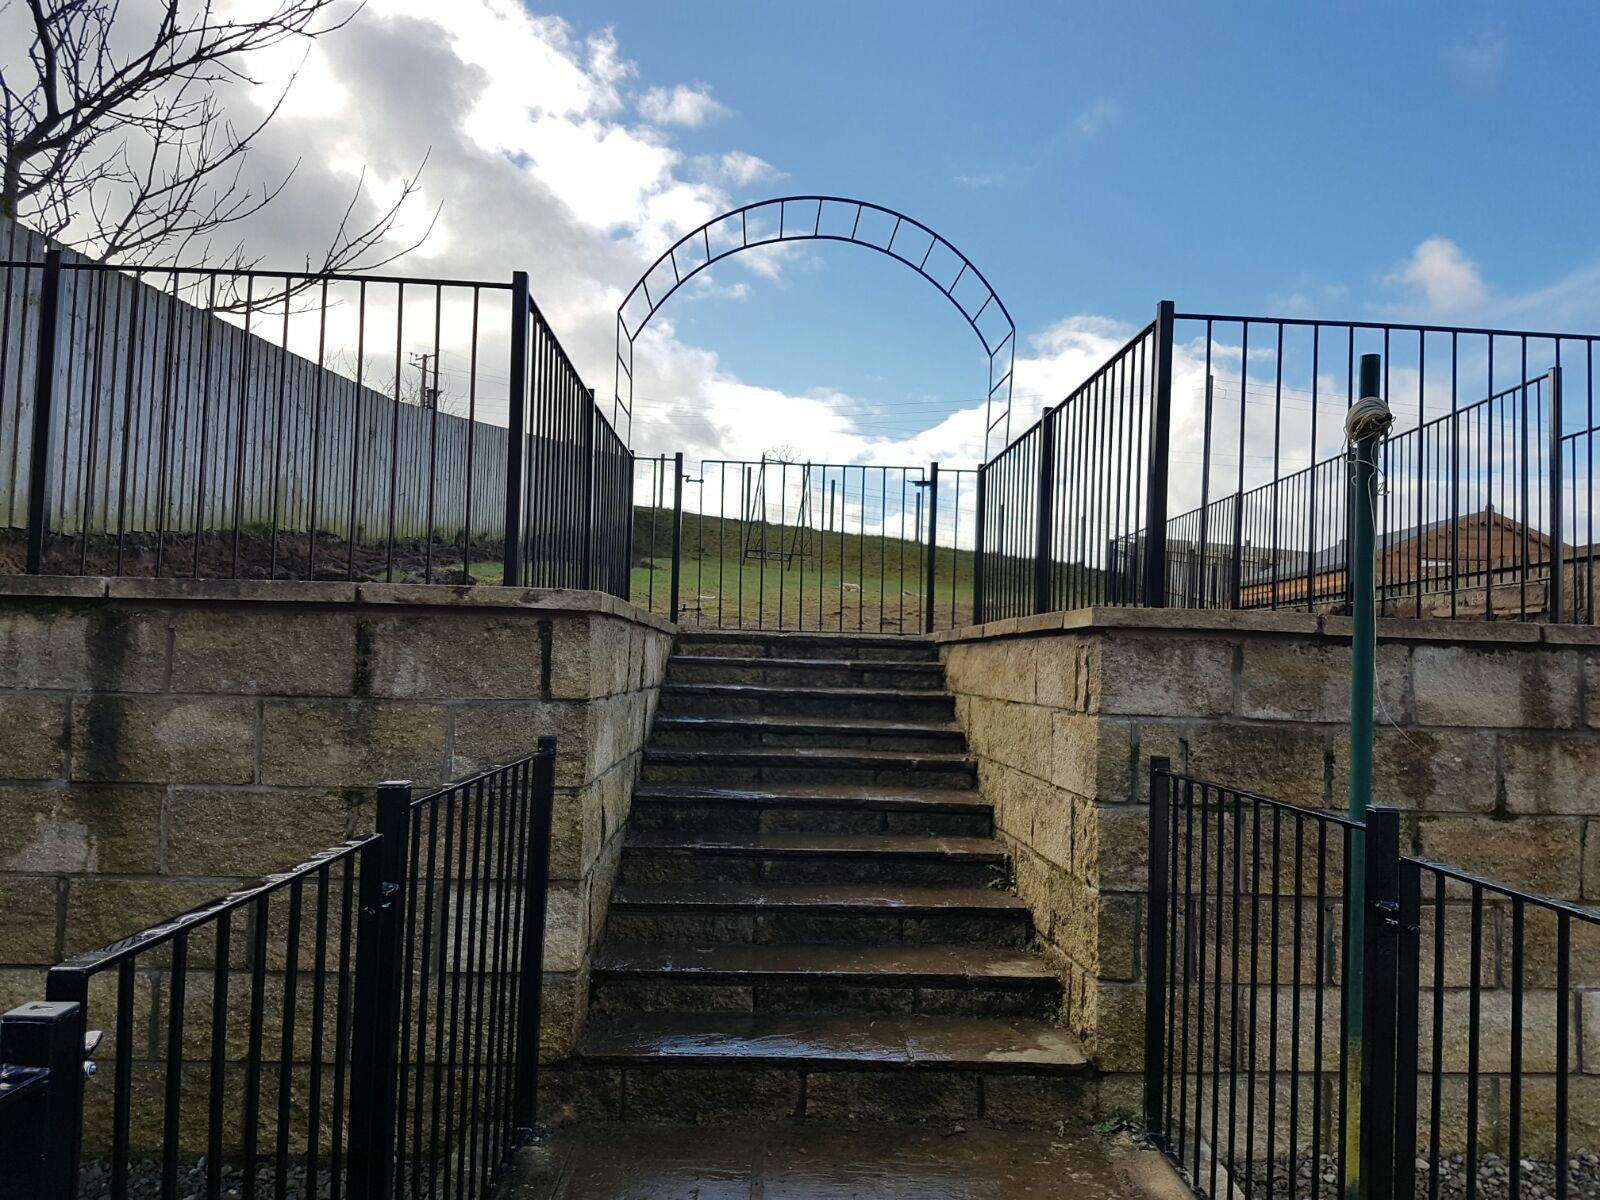 Metal fencing and archway fabricated by Dain Art Iron in Ayrshire